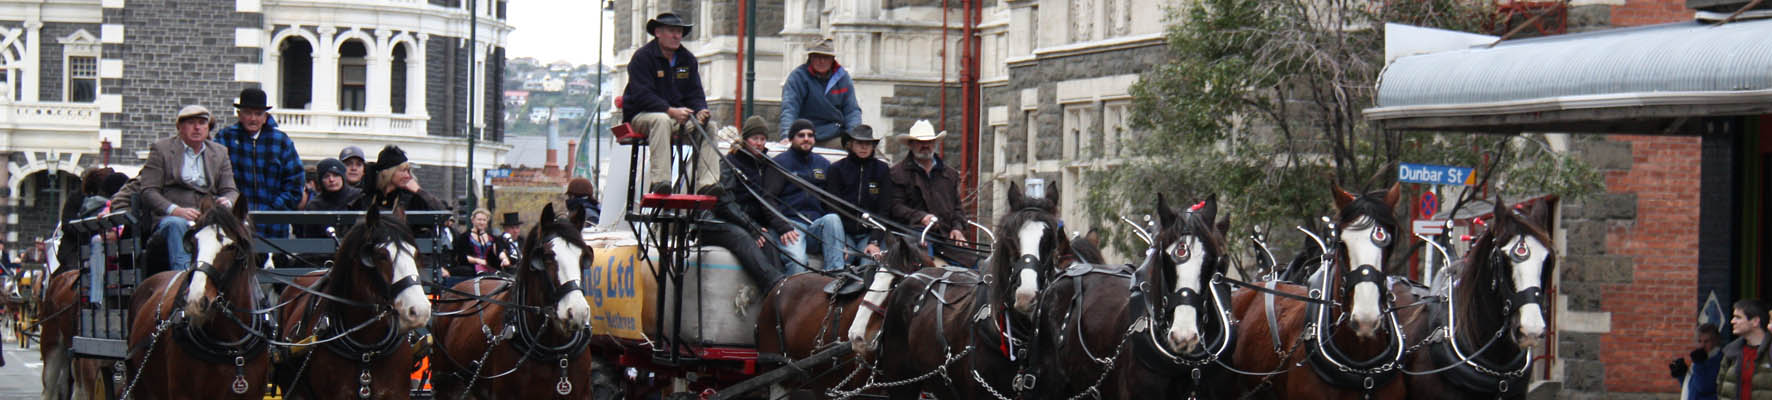 Clydesdale History